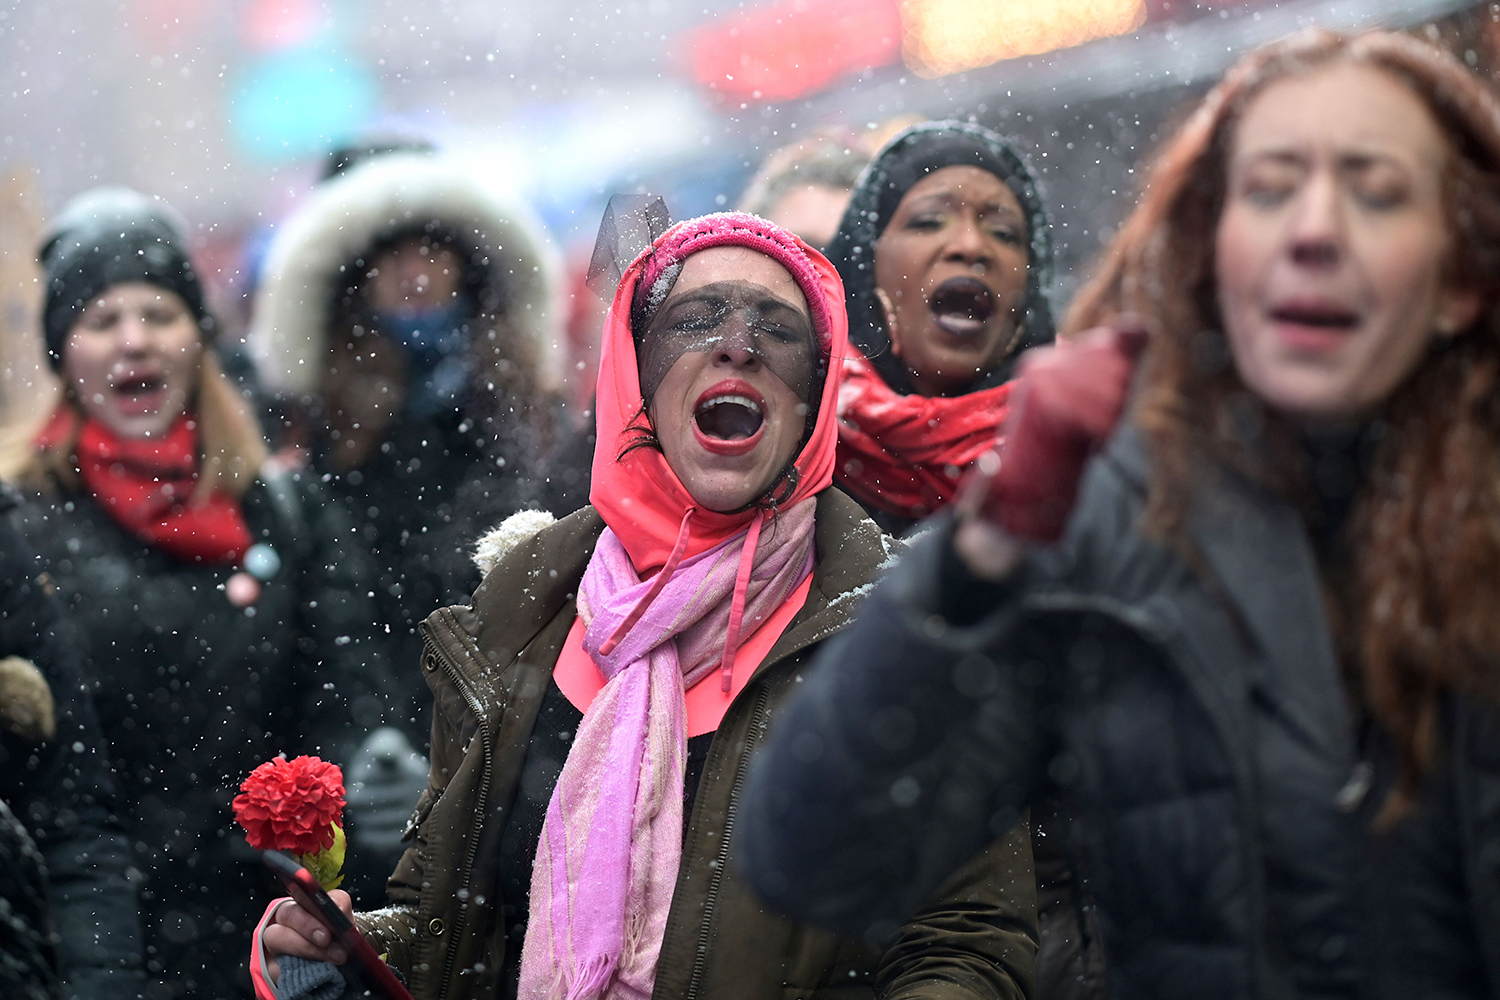 Women inspired by the Chilean feminist group Las Tesis dance during the Womens March in New York on Jan. 18. JOHANNES EISELE/AFP via Getty Images